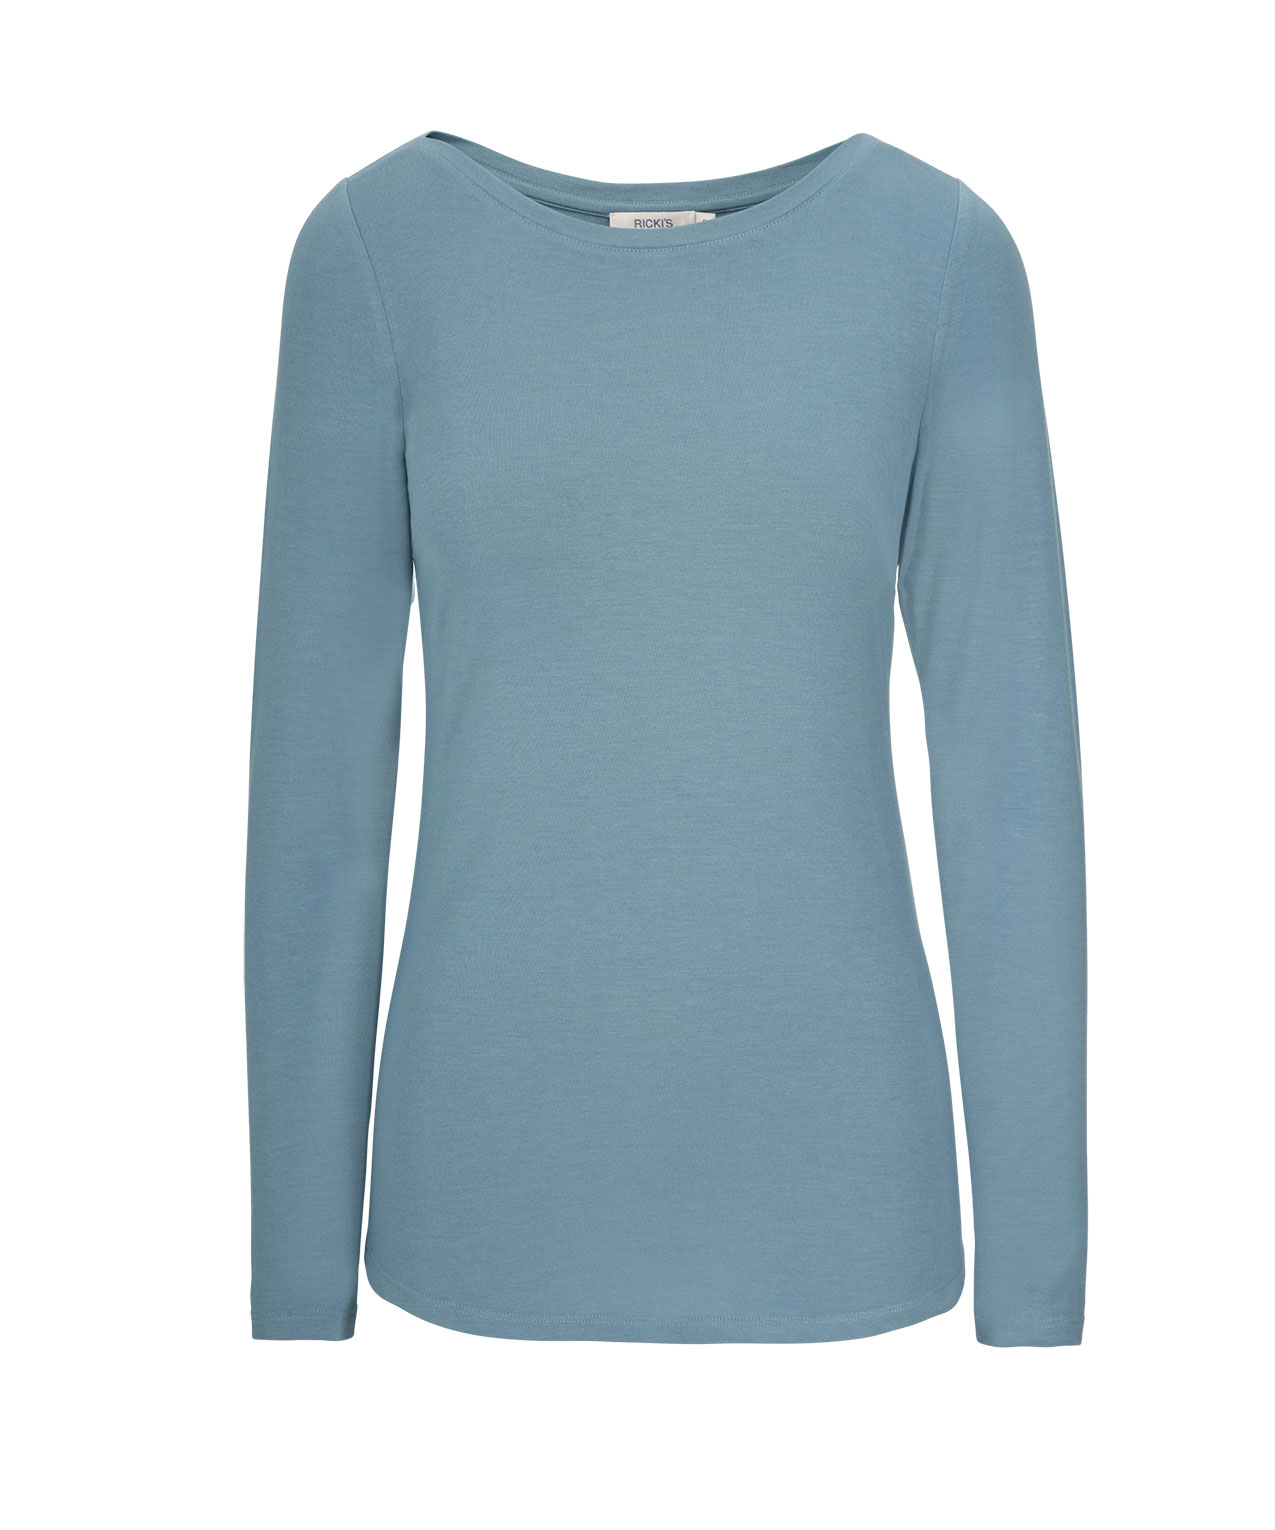 Boatneck Layering Essential Top, Lake Blue, hi-res